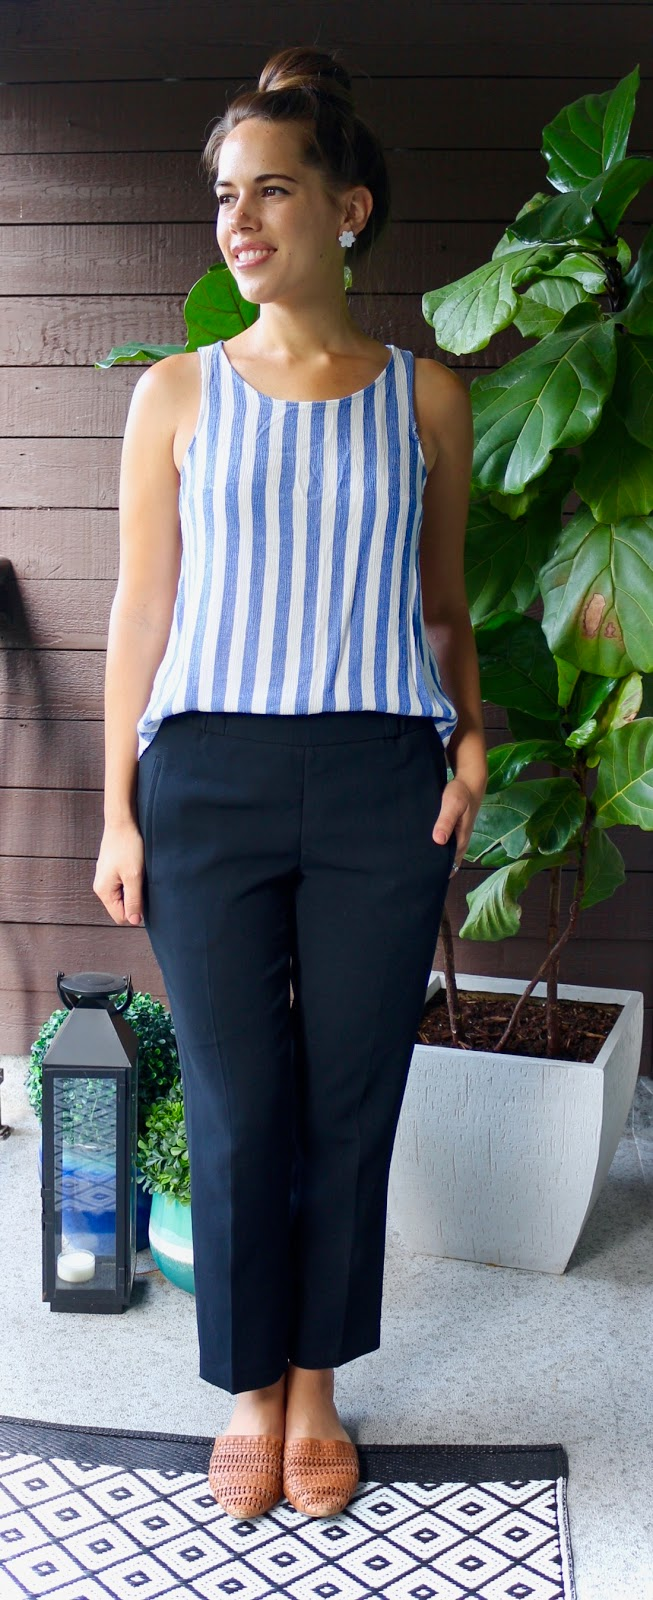 Jules in Flats - Stripe Top with Aritzia Darontal Crepe Pants (Business Casual Summer Workwear on a Budget)